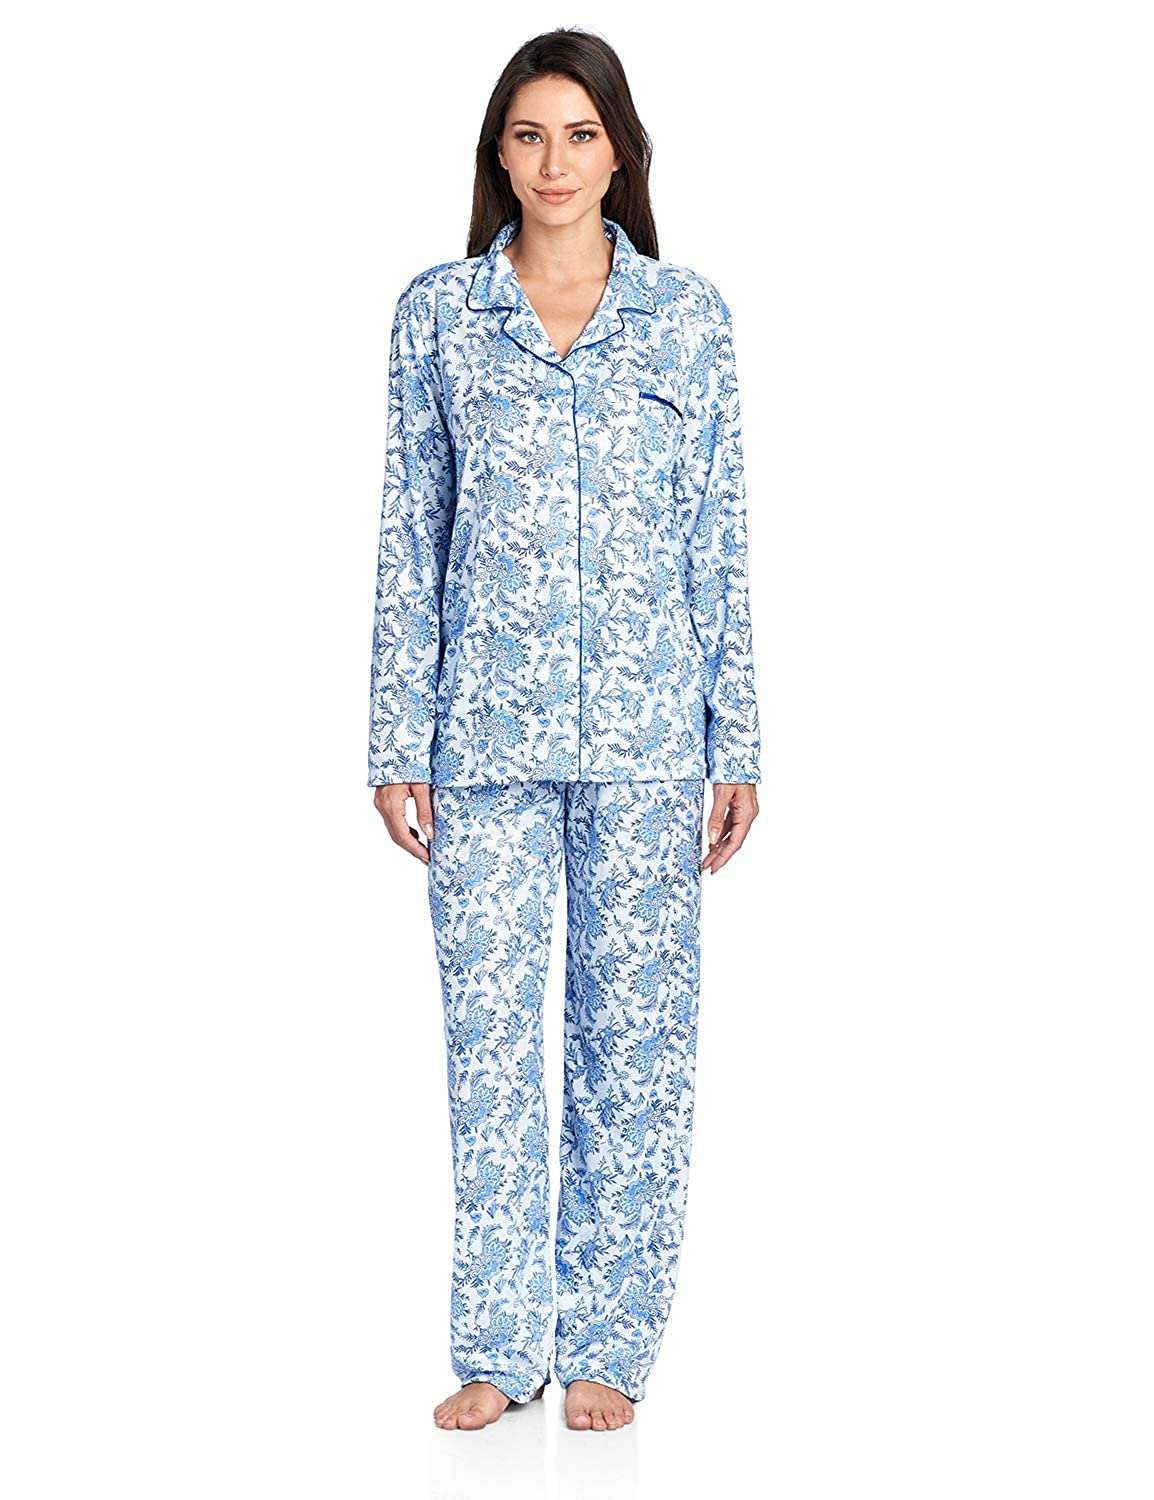 Casual Nights Women s Sleepwear Long Sleeve Floral Pajama Set at Amazon  Women s Clothing store  7f6fb6dfb